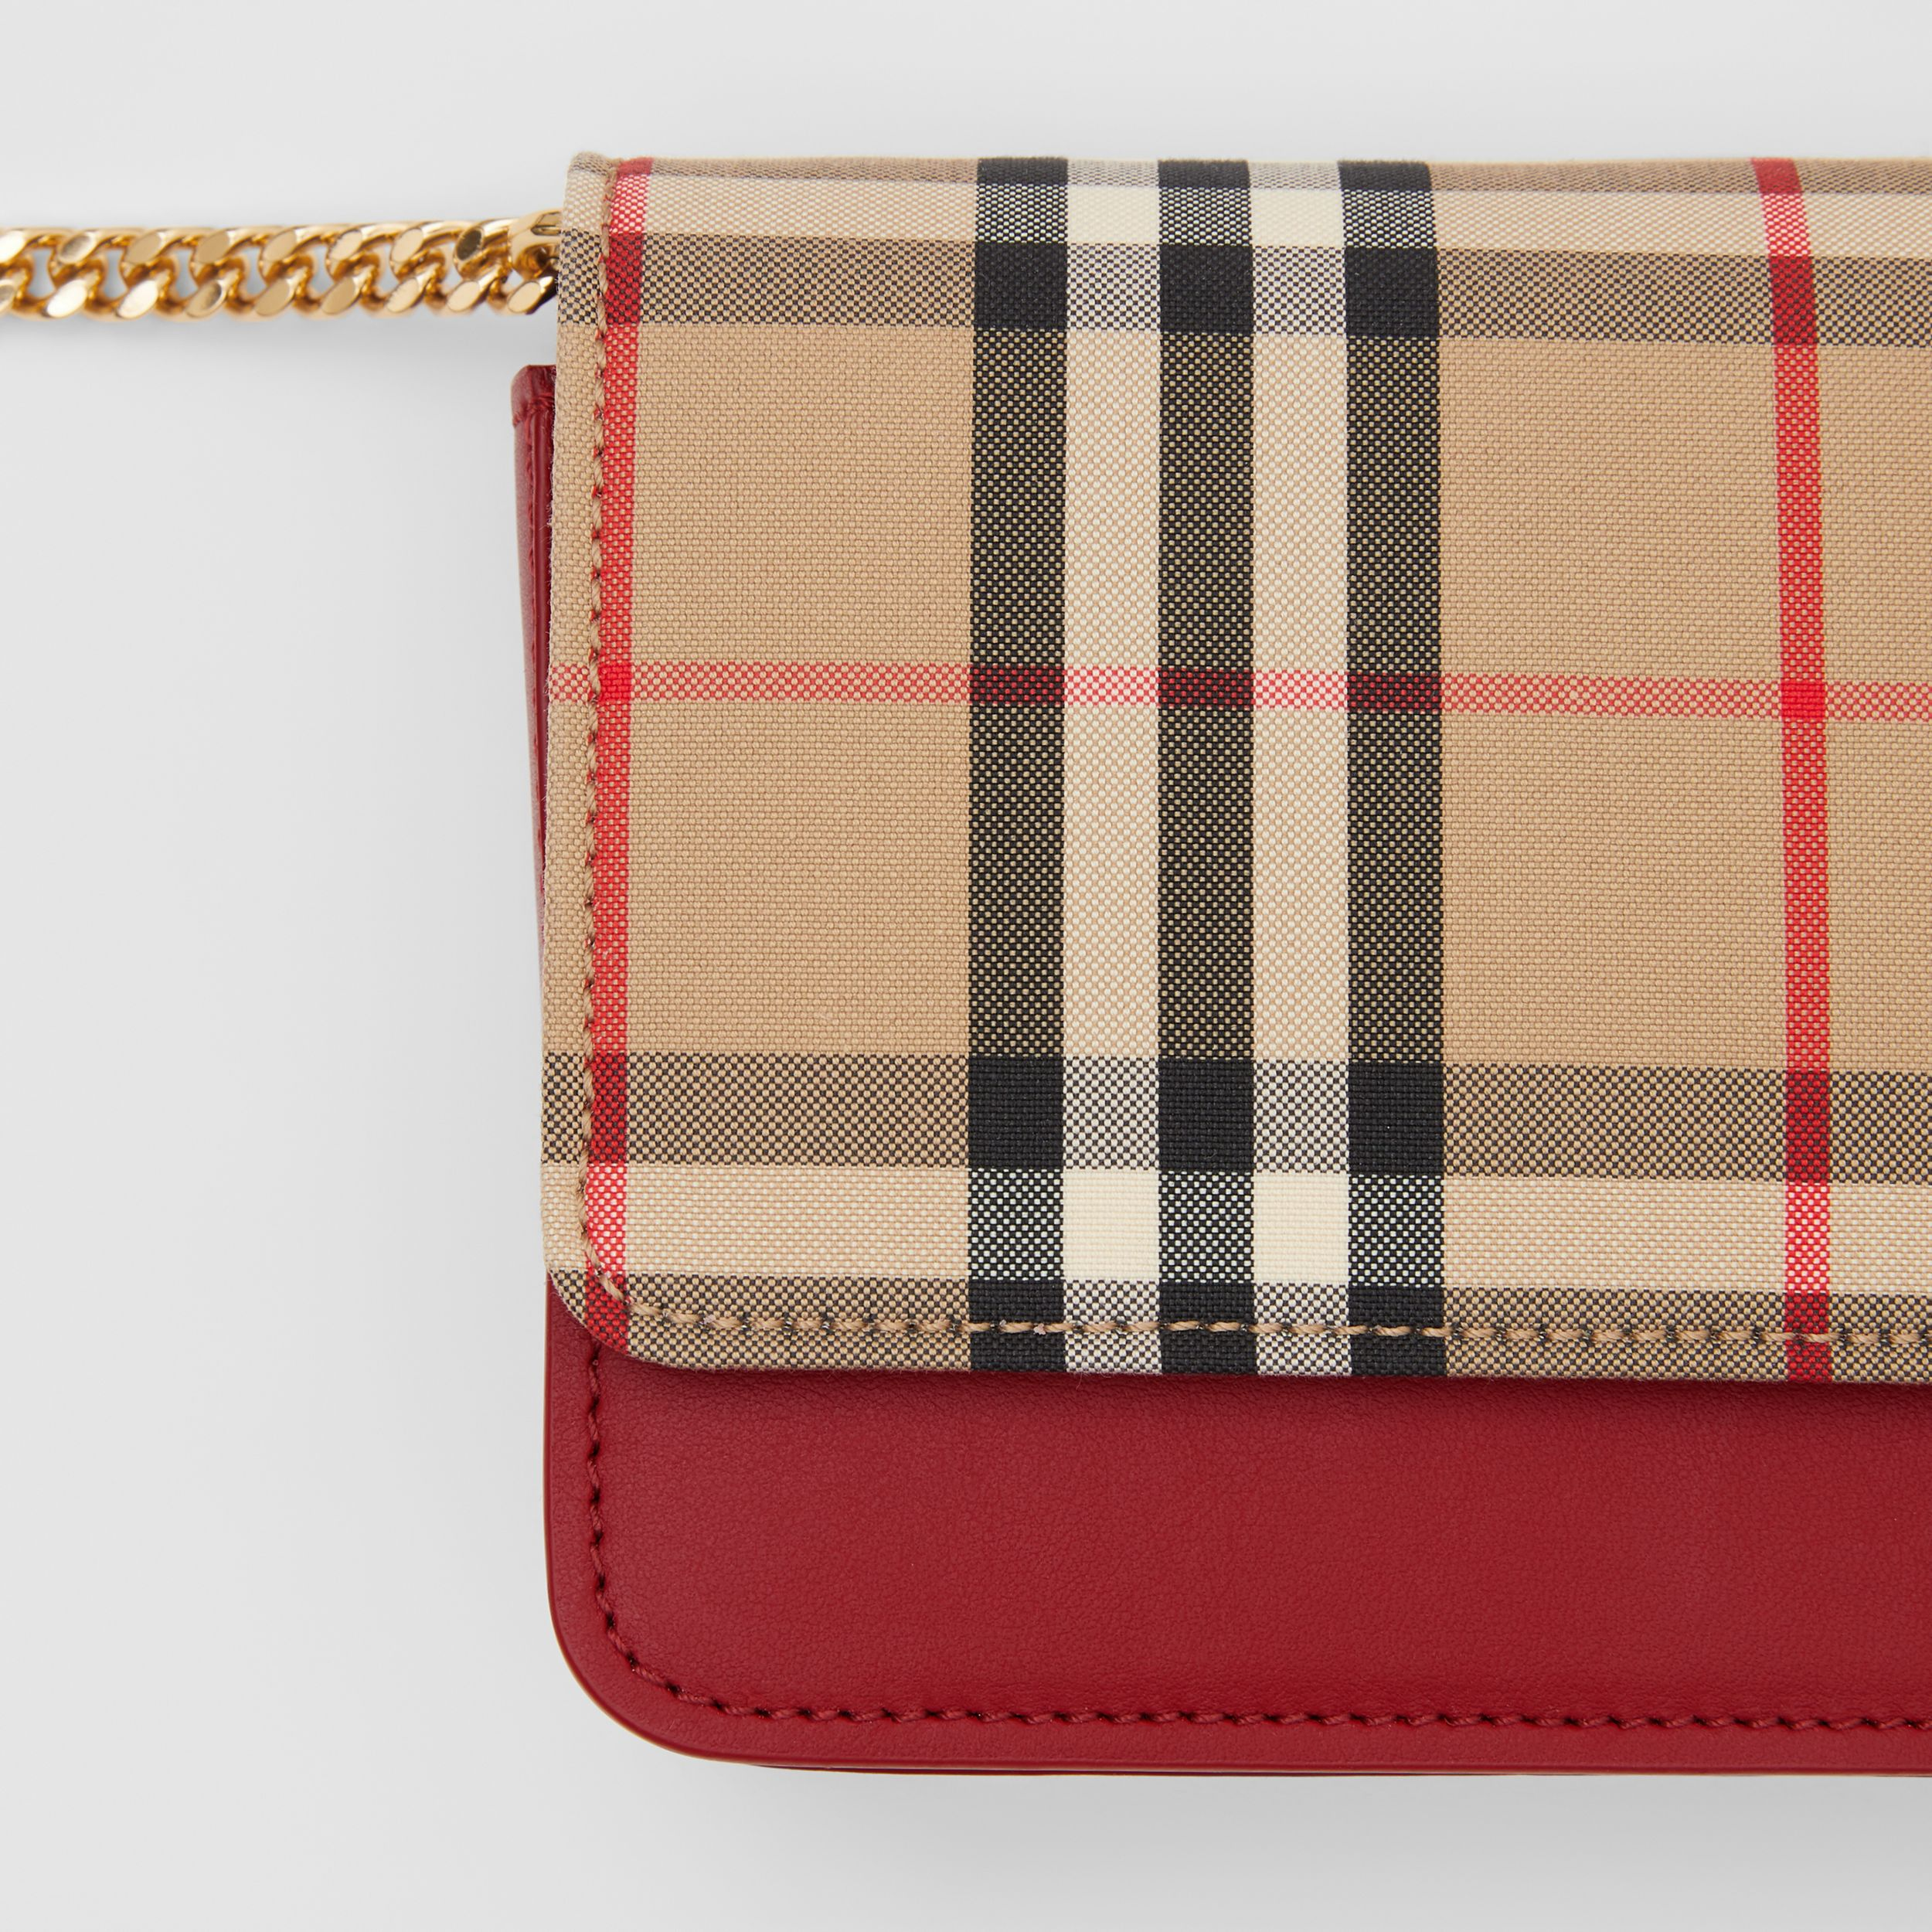 Vintage Check Canvas and Leather Bag in Parade Red - Women | Burberry - 2